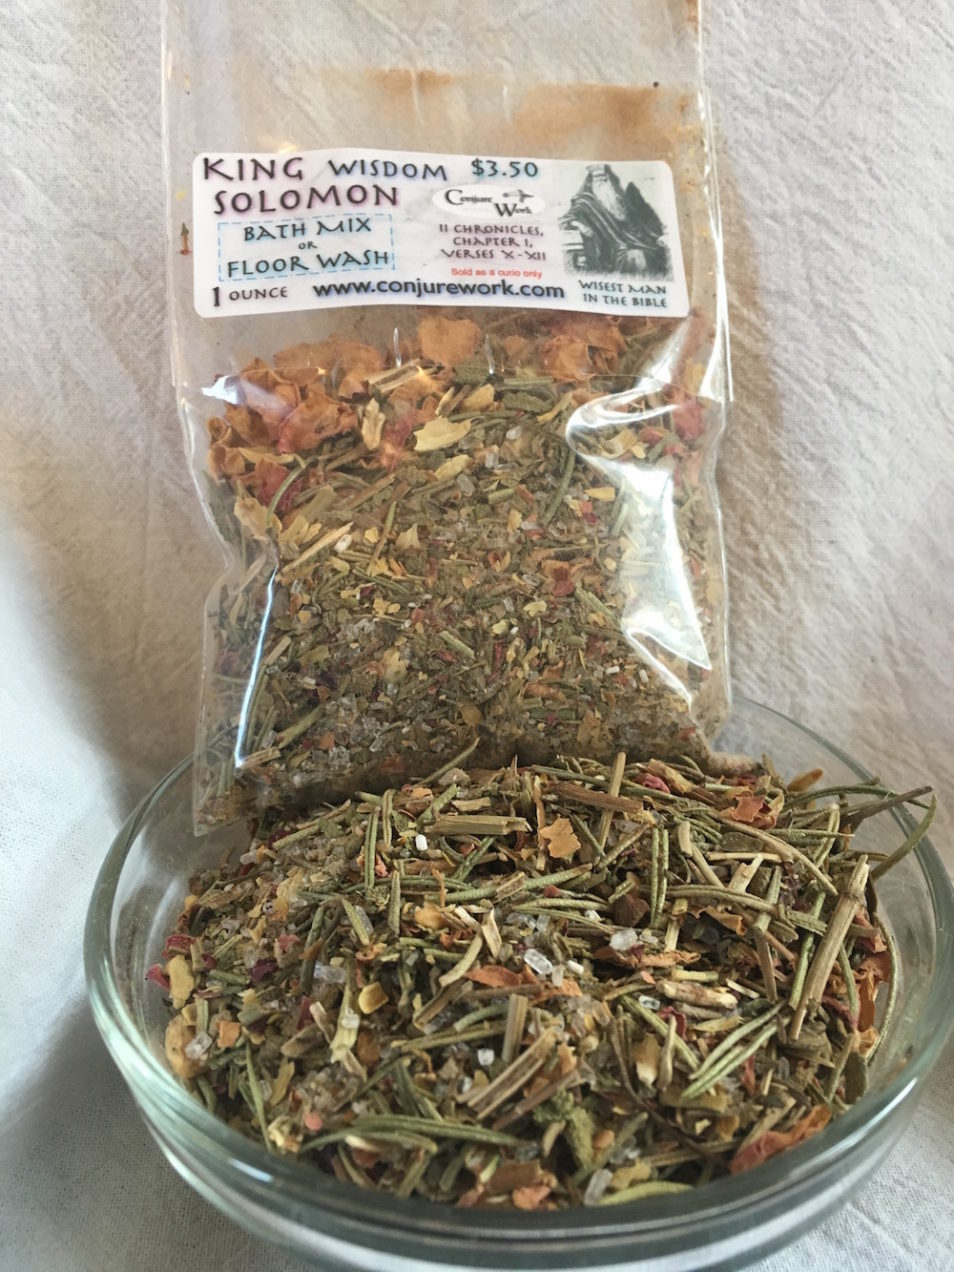 King Solomon Wisdom Bath Mix - Used to gain insight and make decisions. By Magus (Kevin Trent Boswell) at Conjure Work.